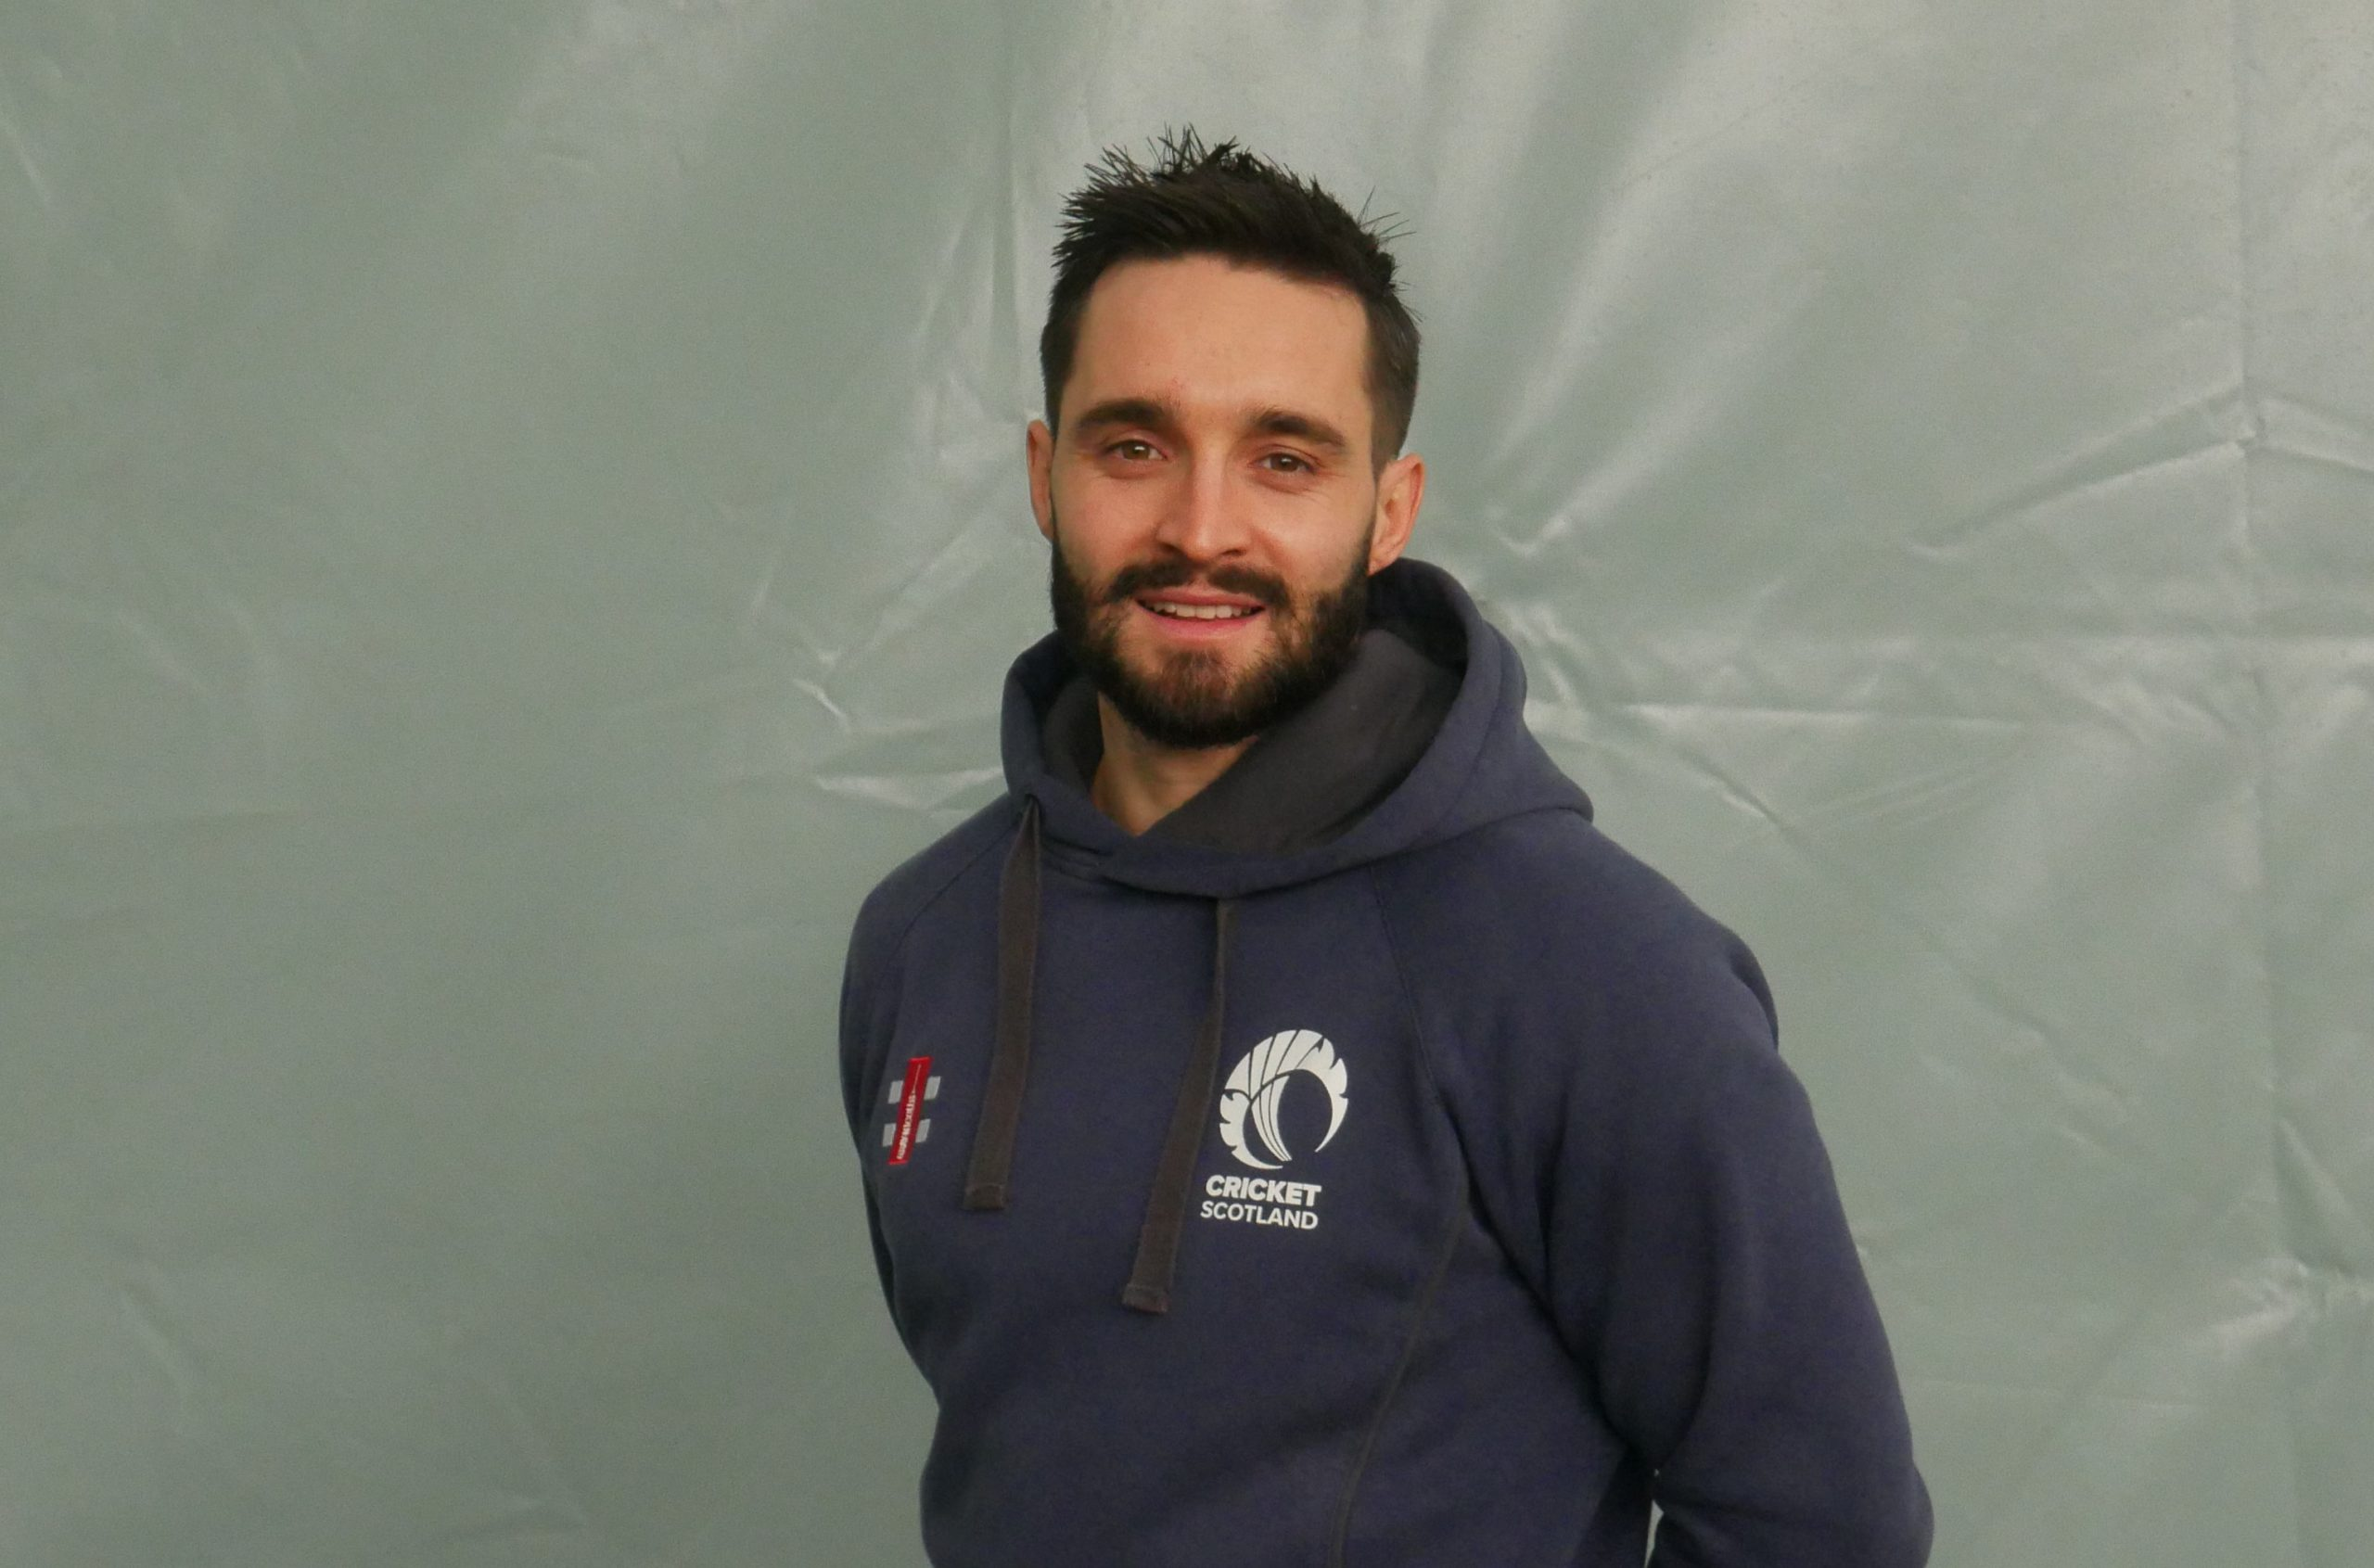 Cricket Scotland: Karamouzis delighted to be back with team ahead of busy 2021